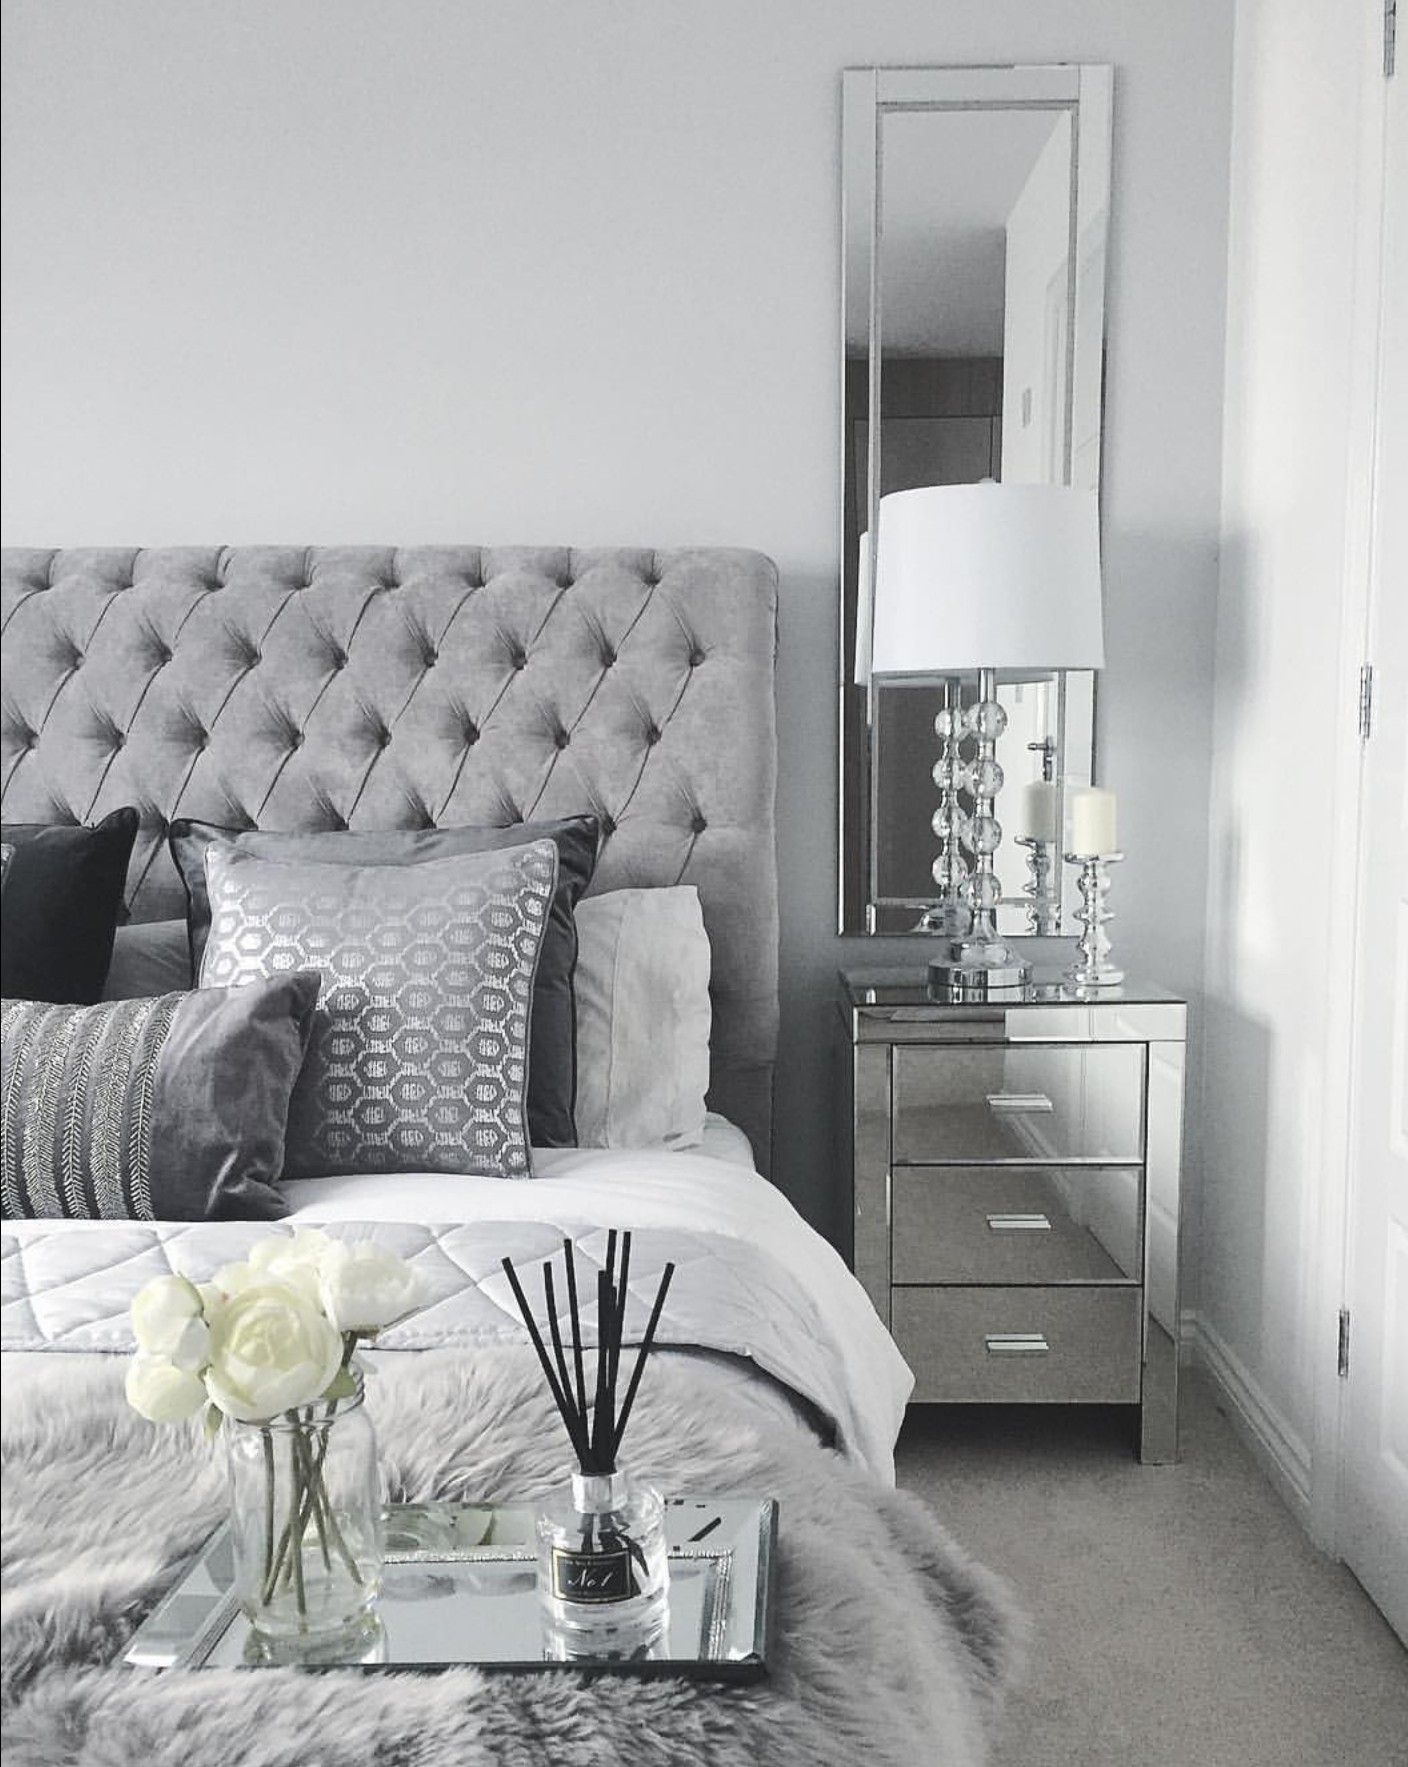 Grey bedroom inspo. Grey interior bedroom. Silver mirror side